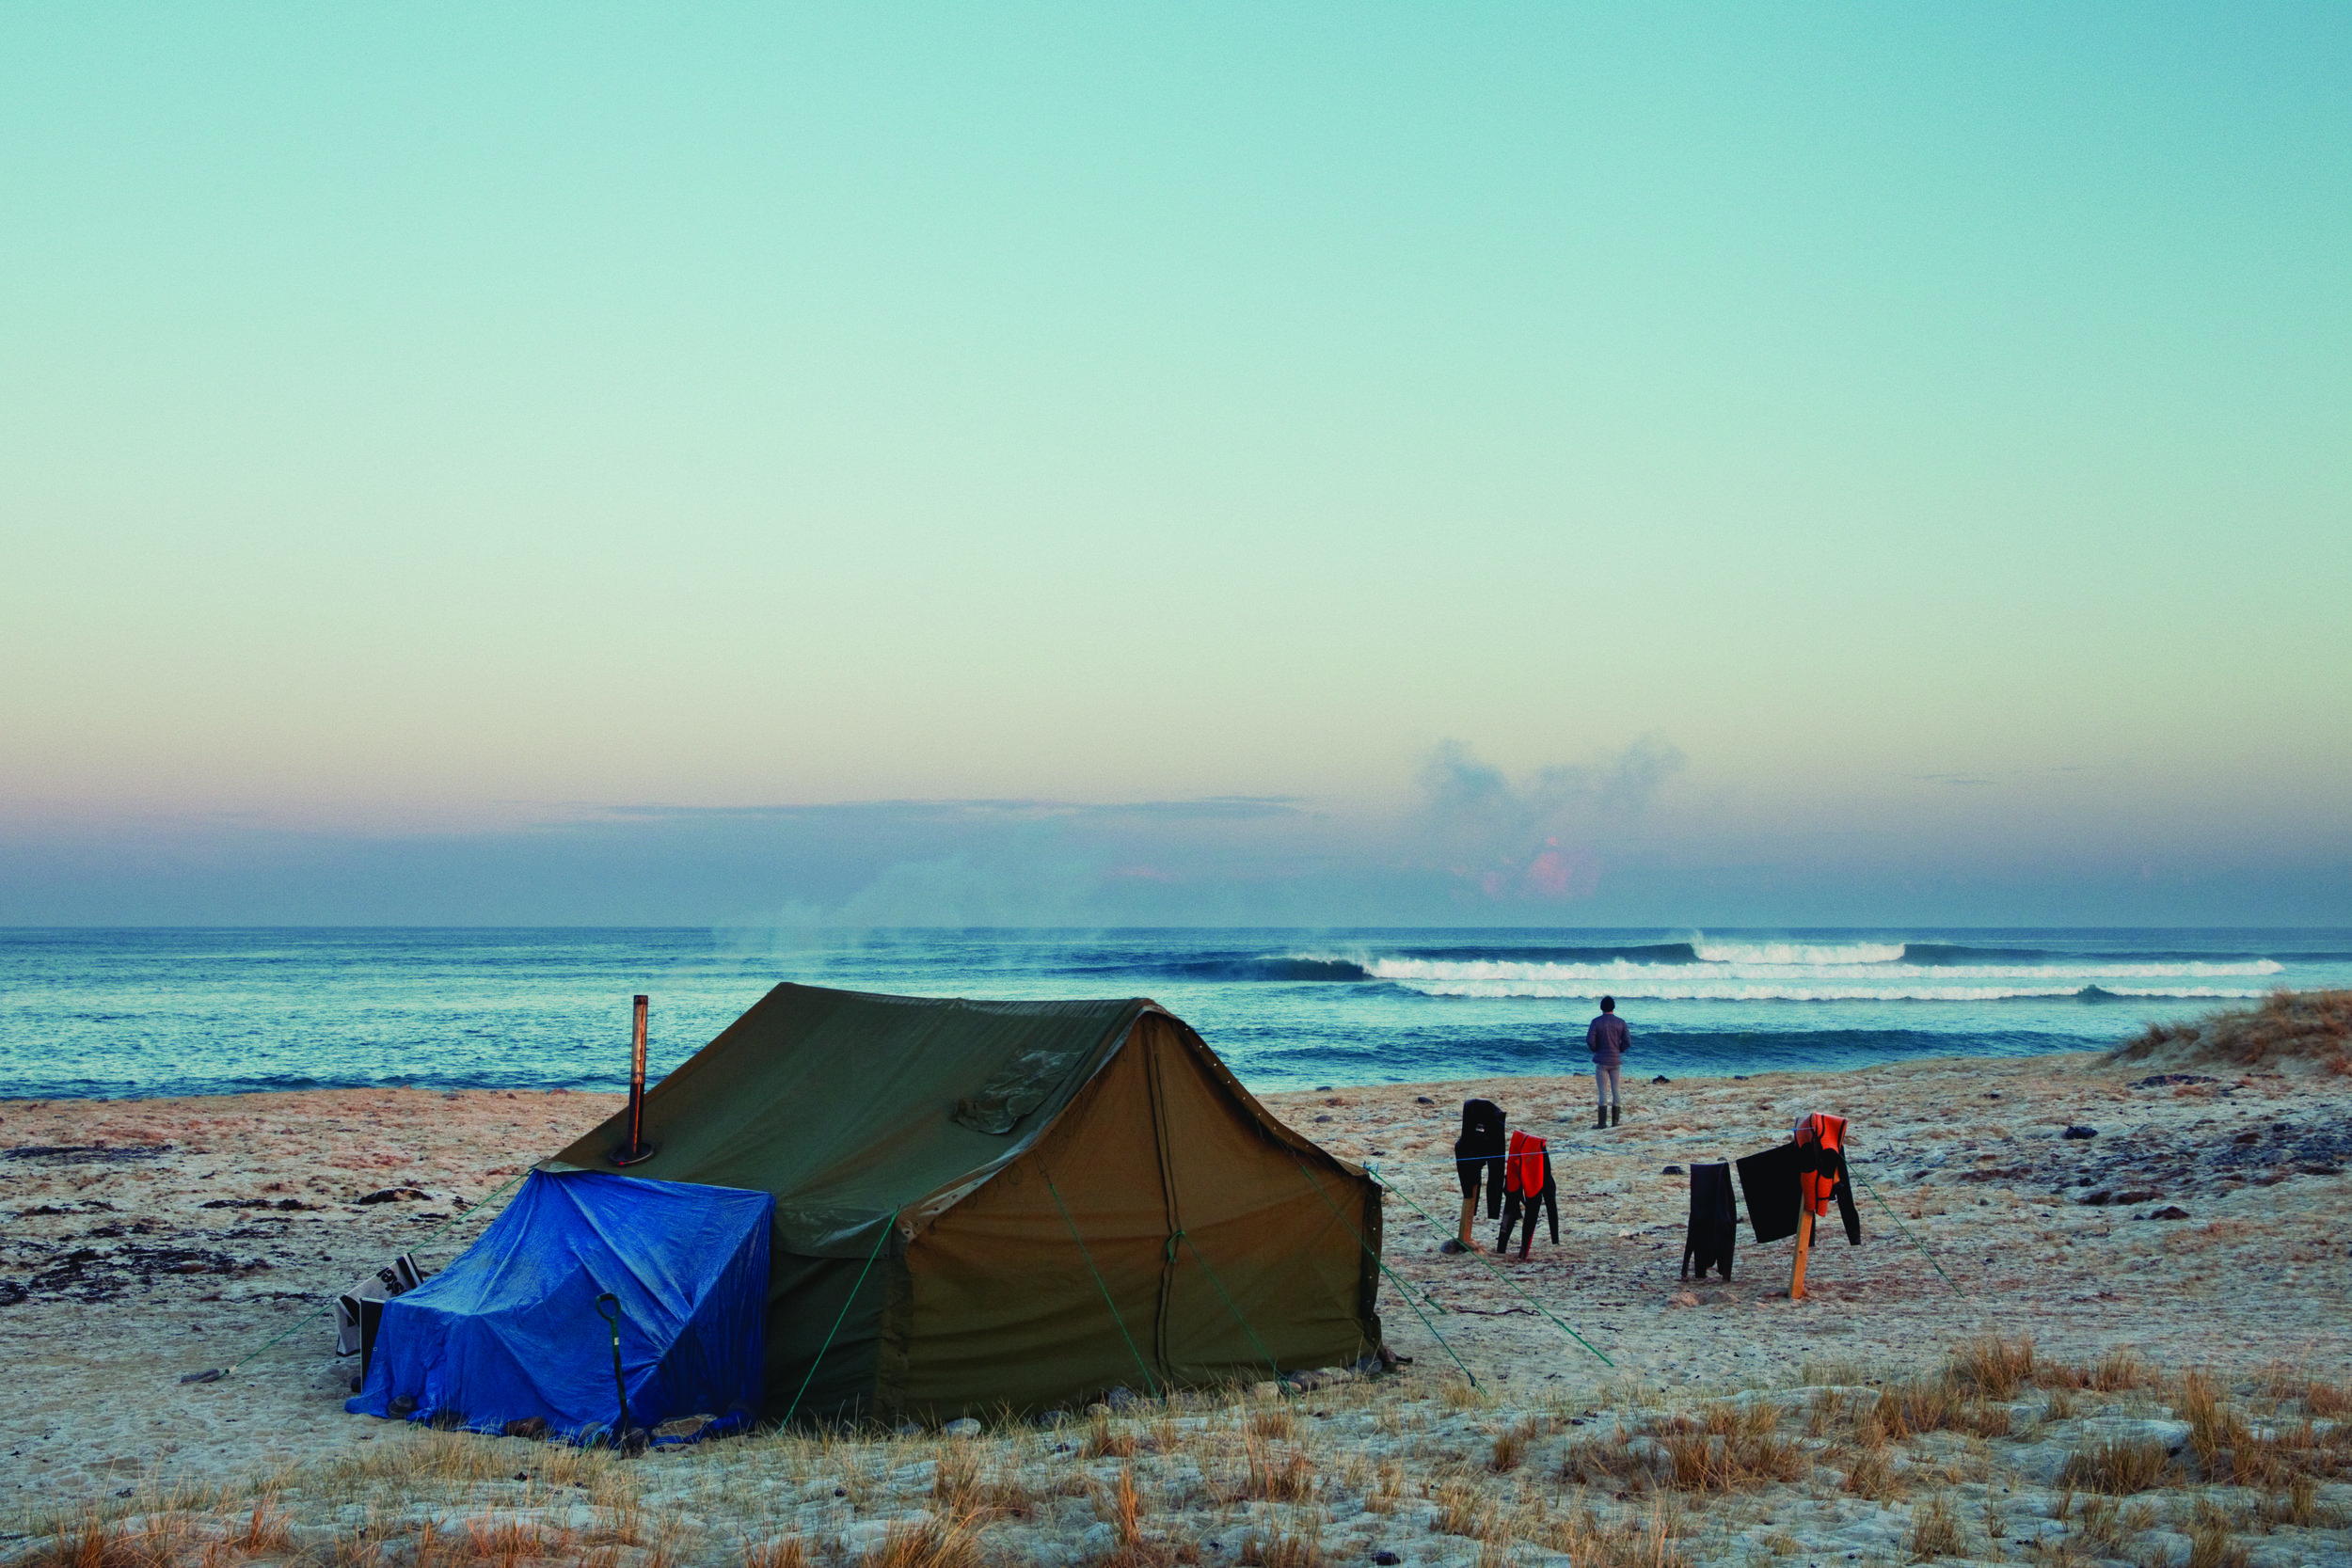 vb813783_tent and wave.jpg